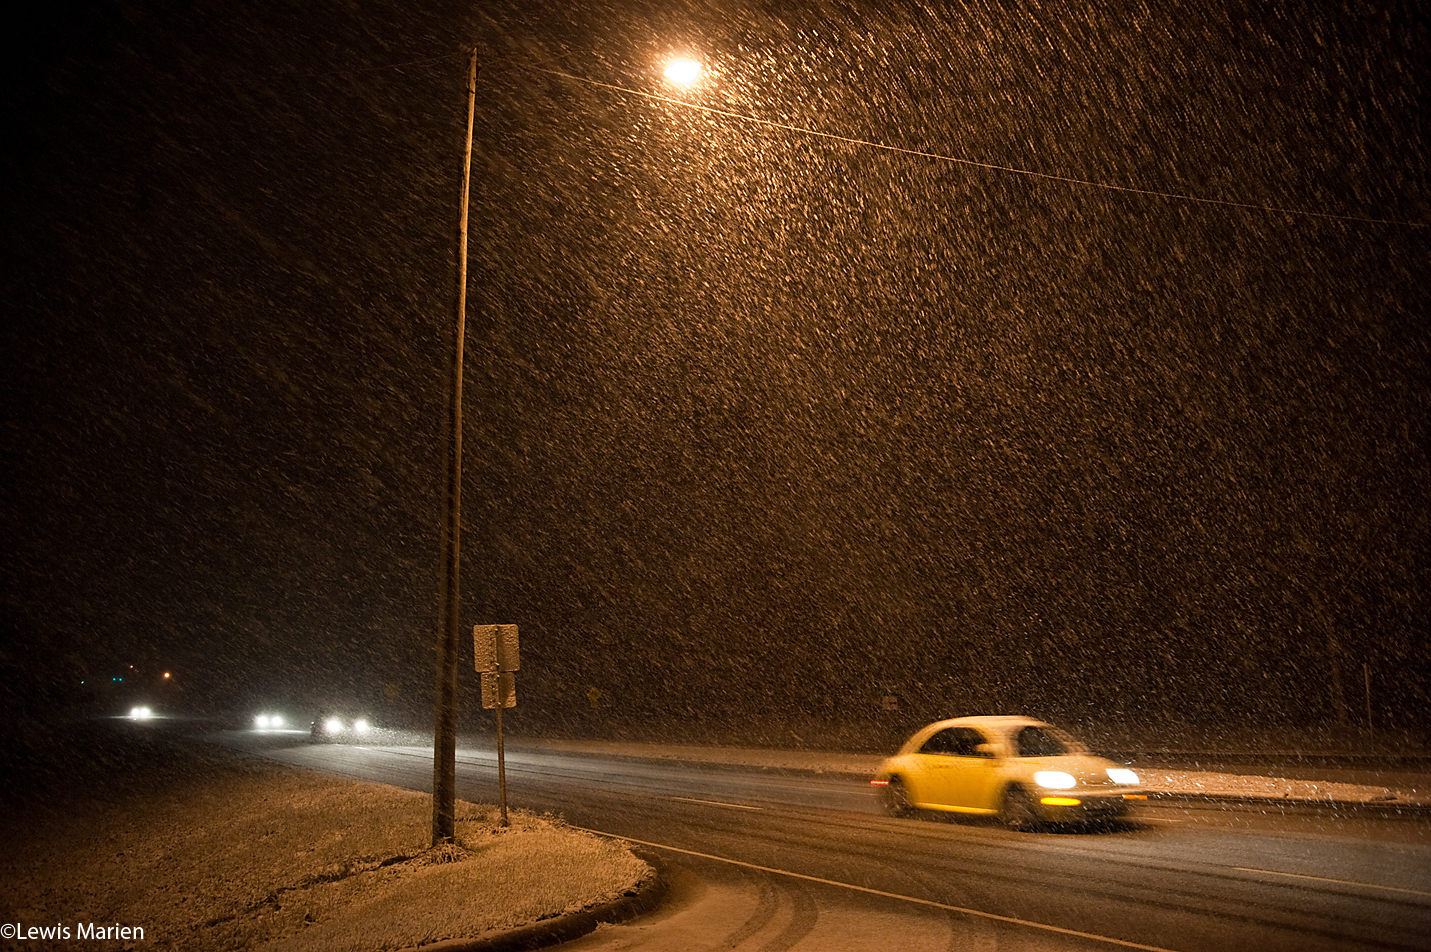 Westbound traffic on U.S. Highway 150 goes about their business as snow begins to fall late-night Nov. 20 north of Galesburg, Ill.